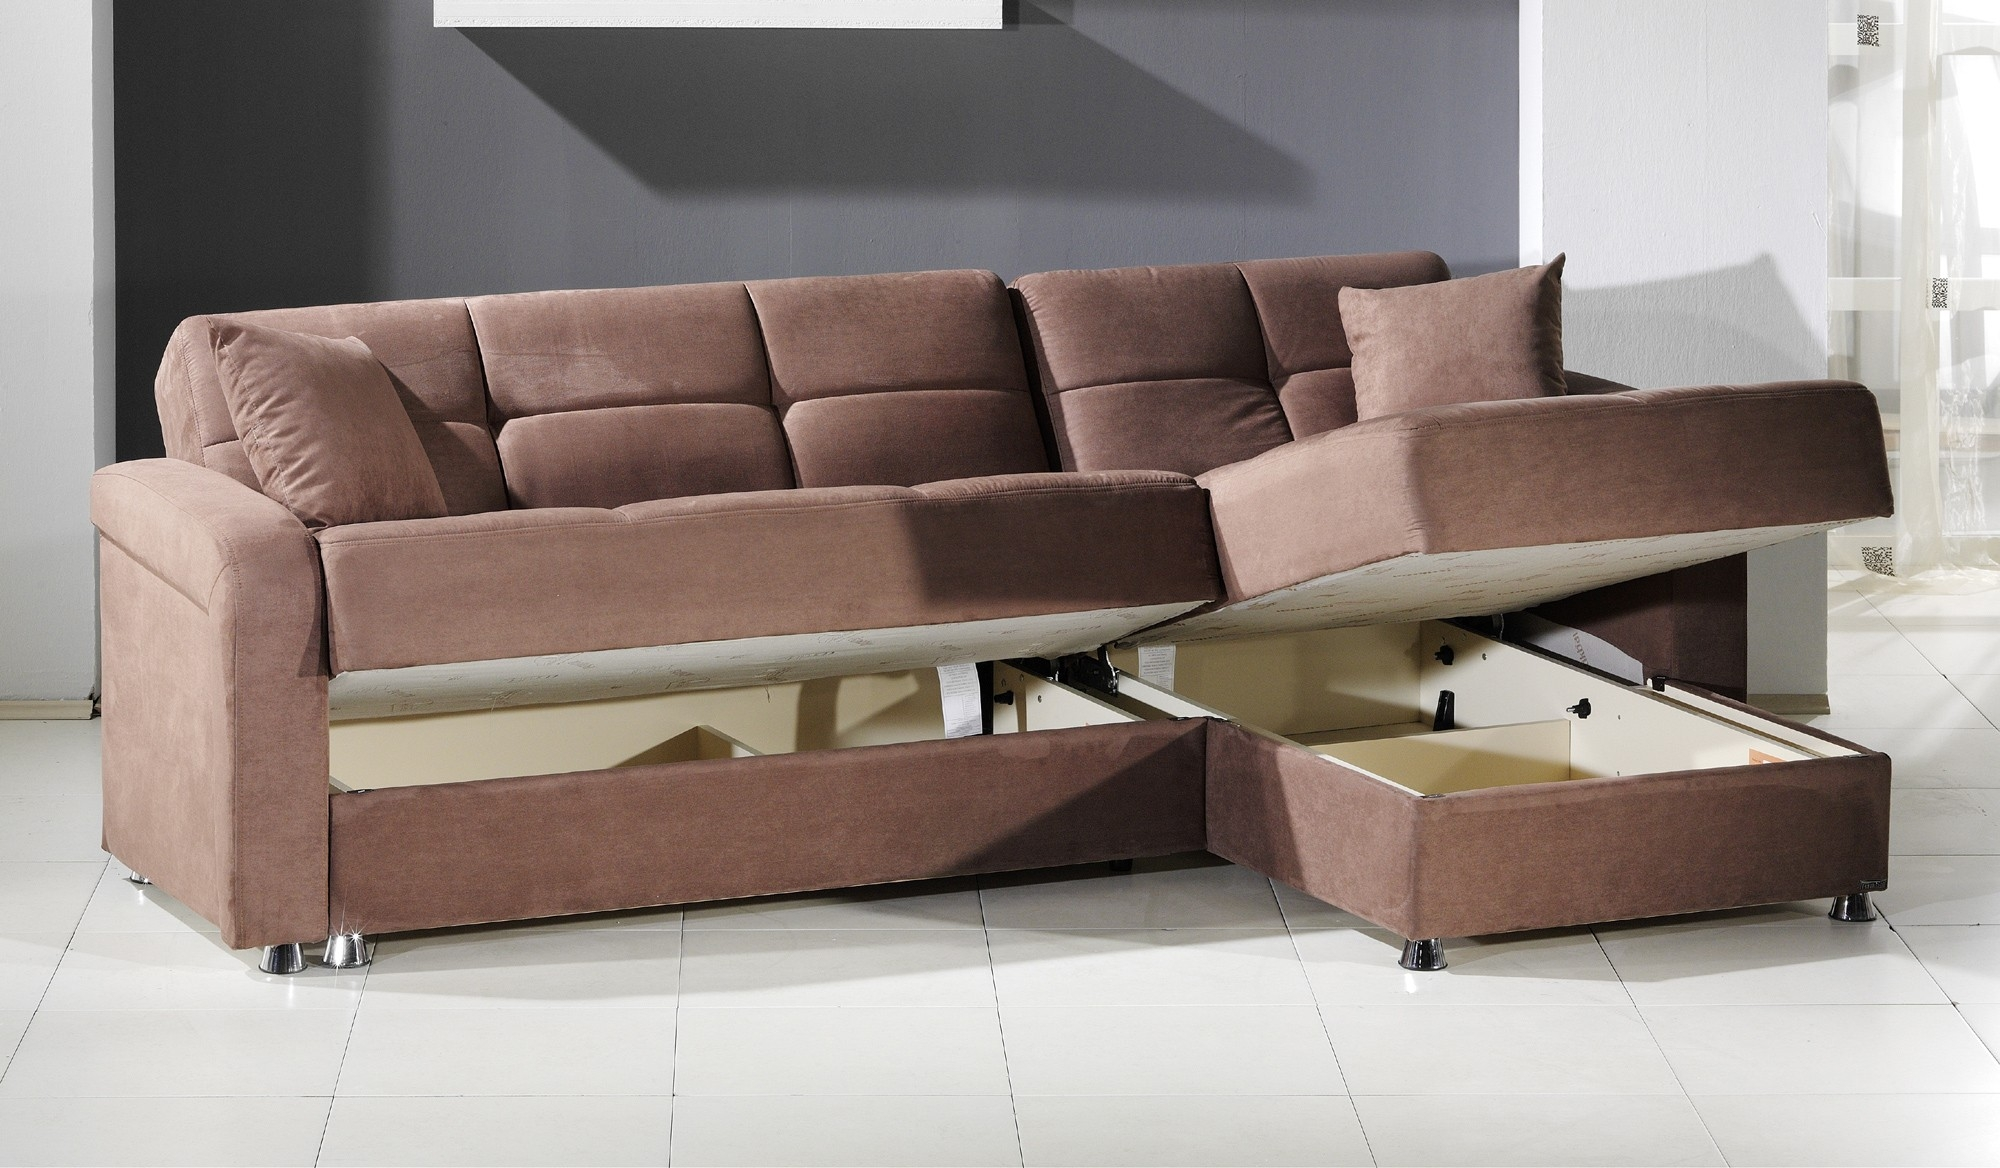 12 Collection of Abbyson Living Charlotte Beige Sectional  : attractive sectional sofas with storage 48 for your abson living in abbyson living charlotte beige sectional sofa and ottoman from themprojects.com size 2000 x 1168 jpeg 1023kB